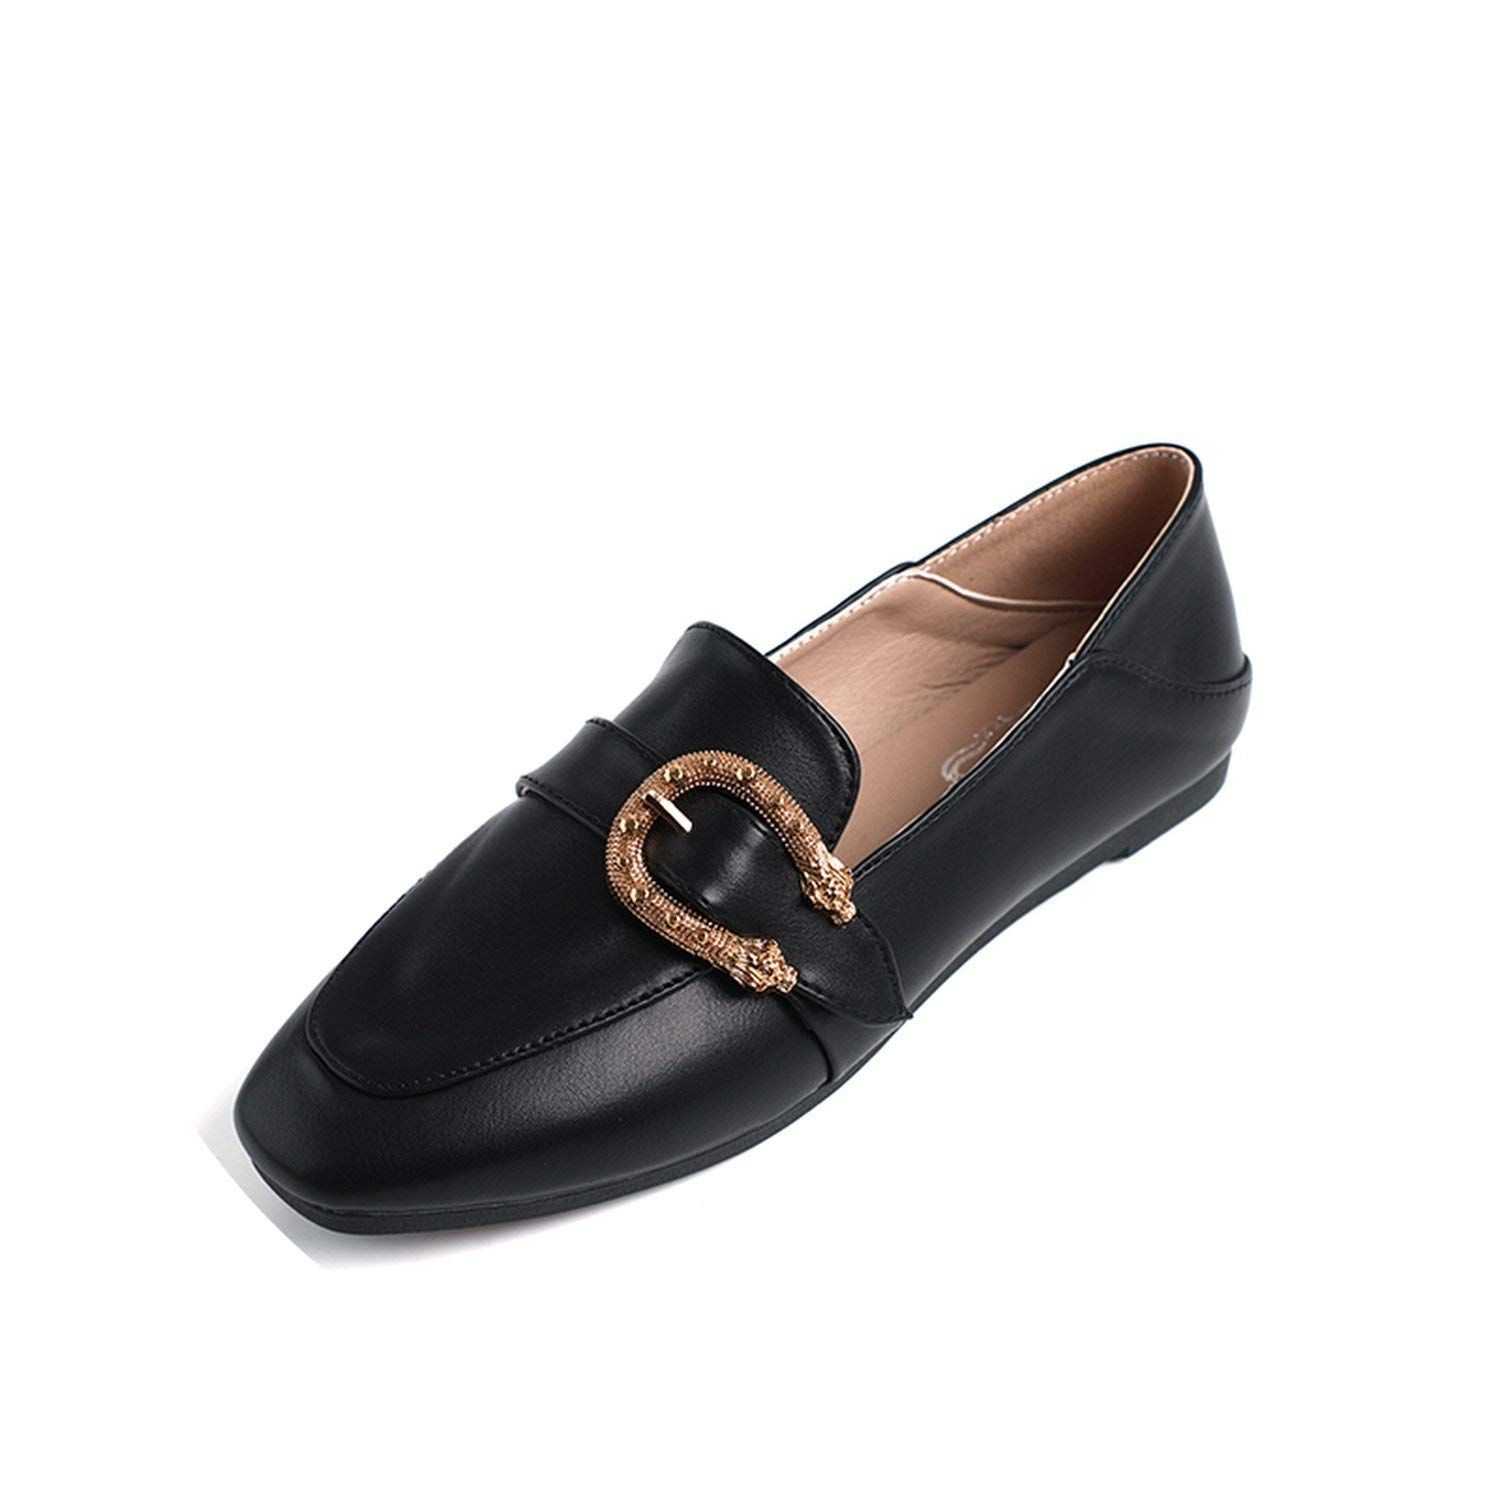 36f8a4486ce Get Quotations · Kingwhisht Loafers   Slip-Ons Loafers Square Toe Slip on Shoes  Buckle Loafer Bead Metal